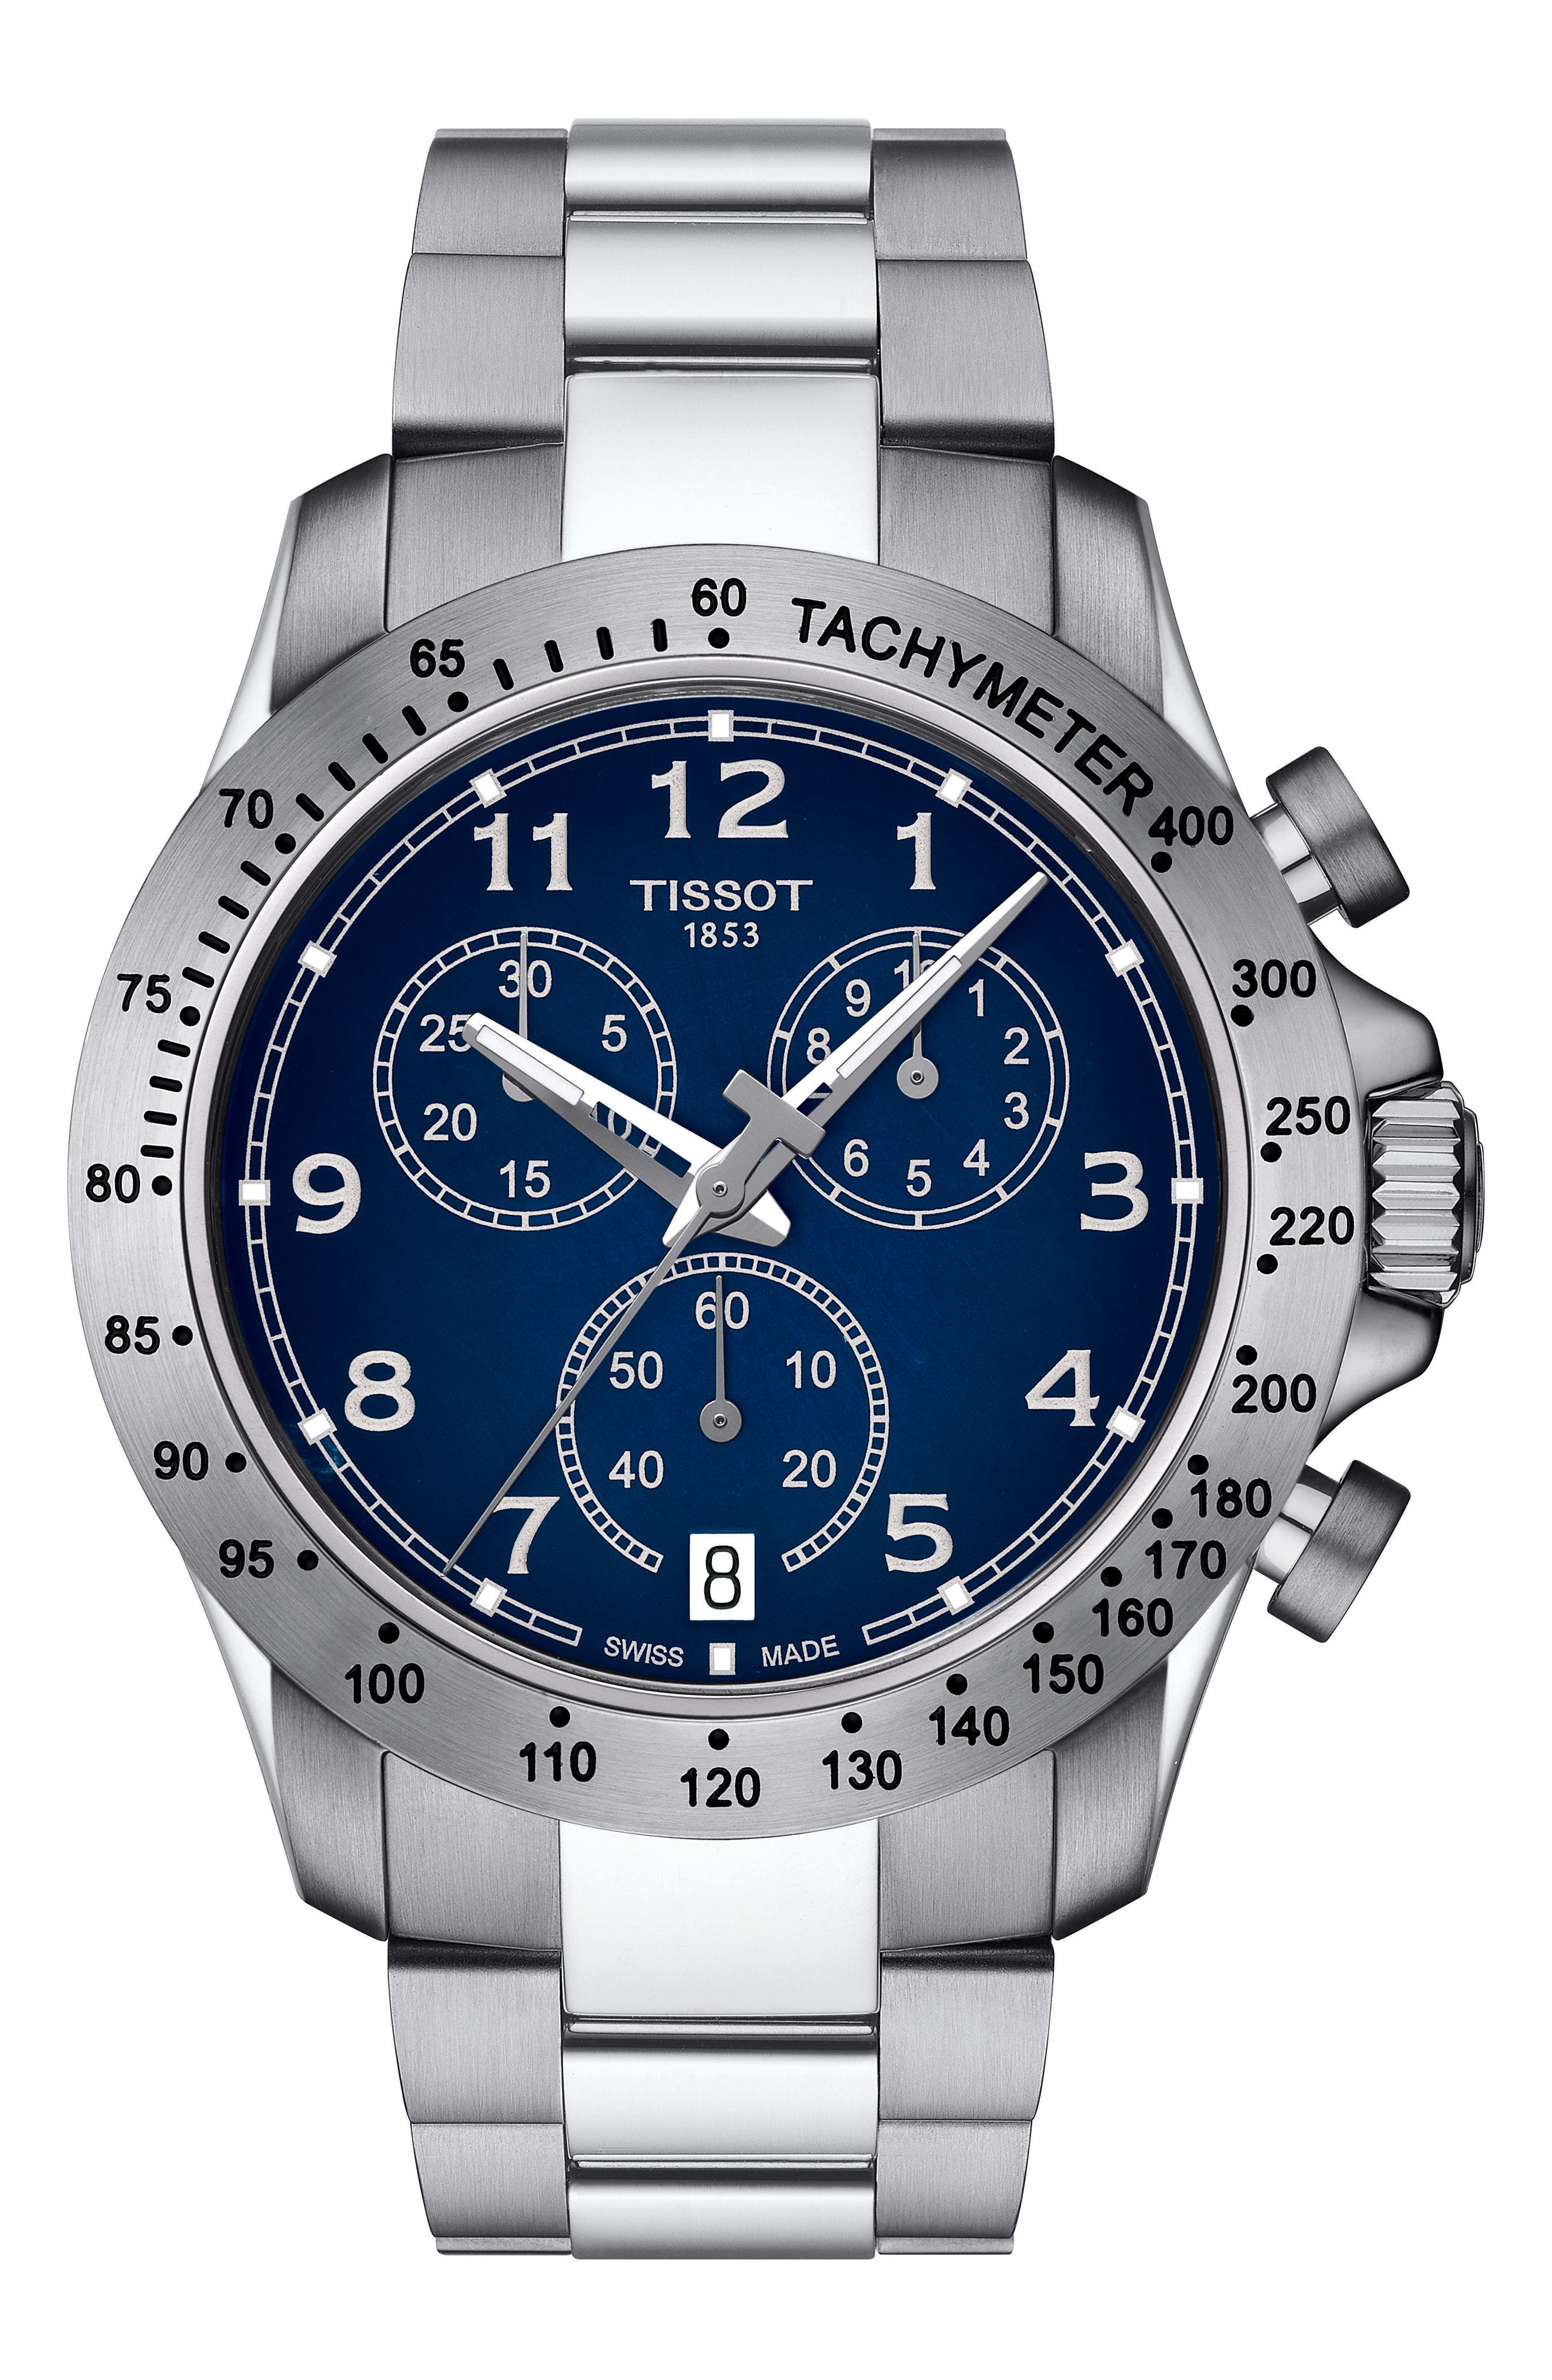 T039.417.11.047.02 V8 STAINLESS STEEL CHRONOGRAPH WATCH